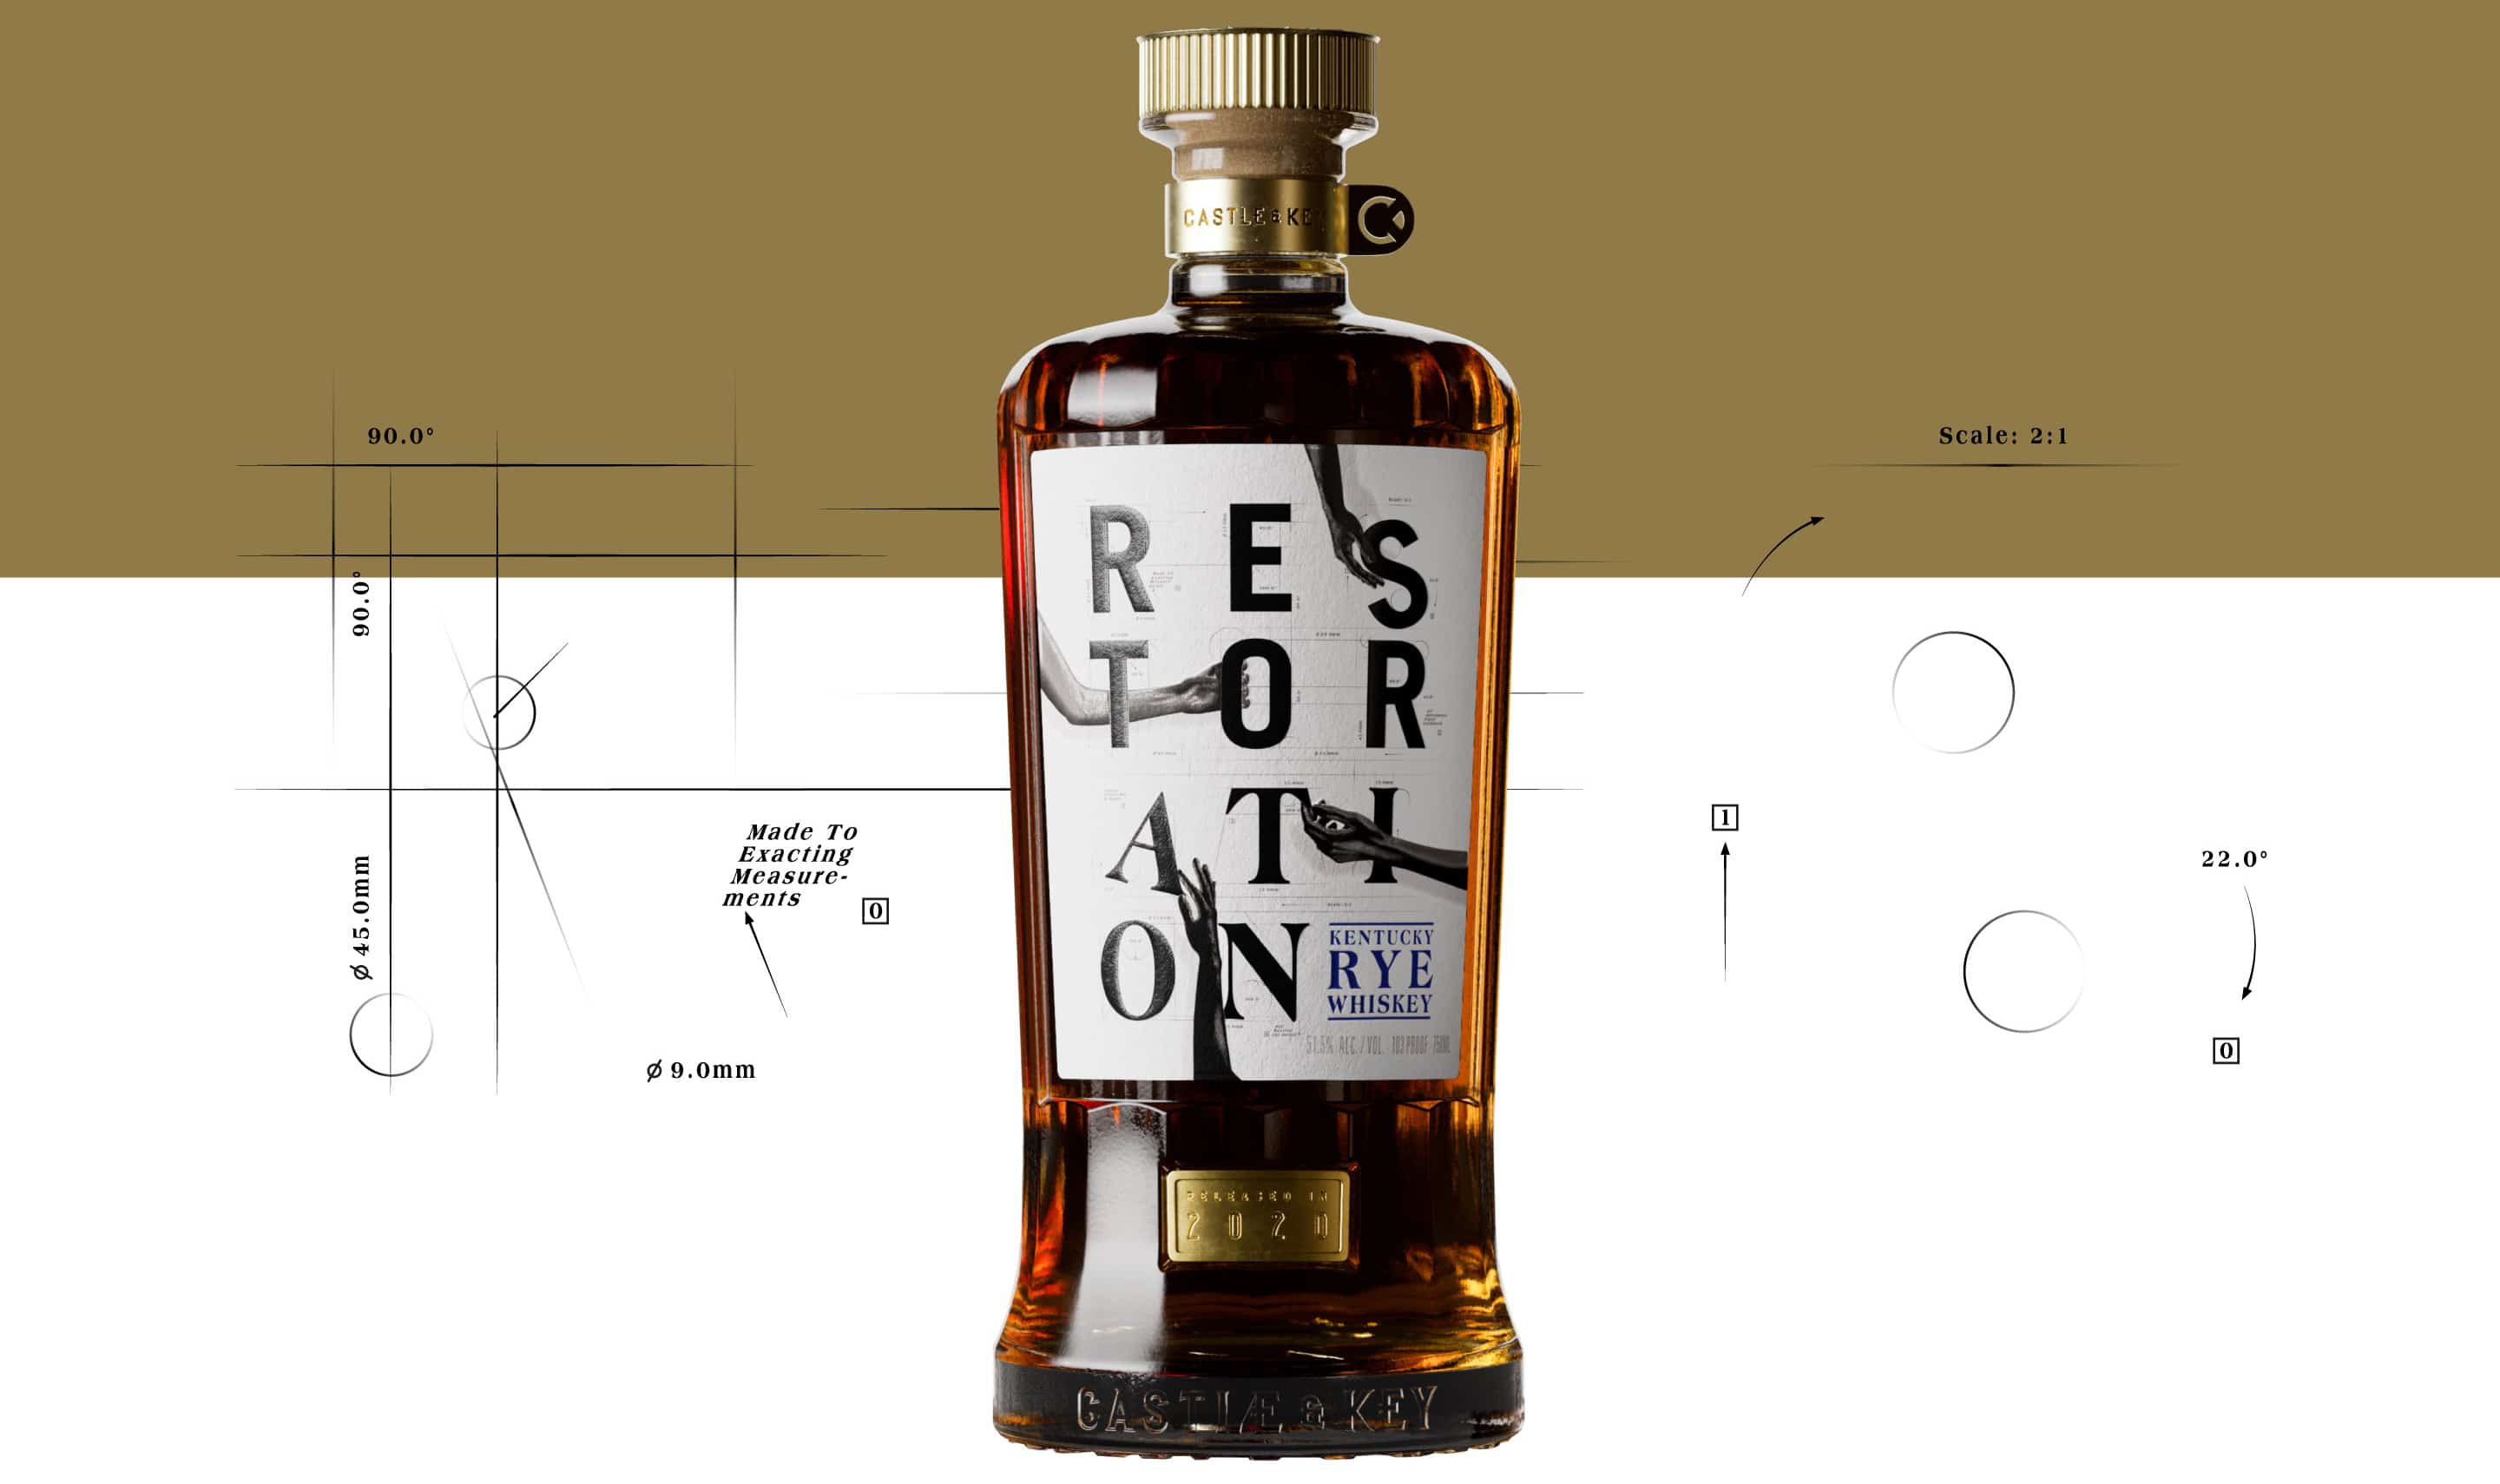 Castle & Key Restoration Rye